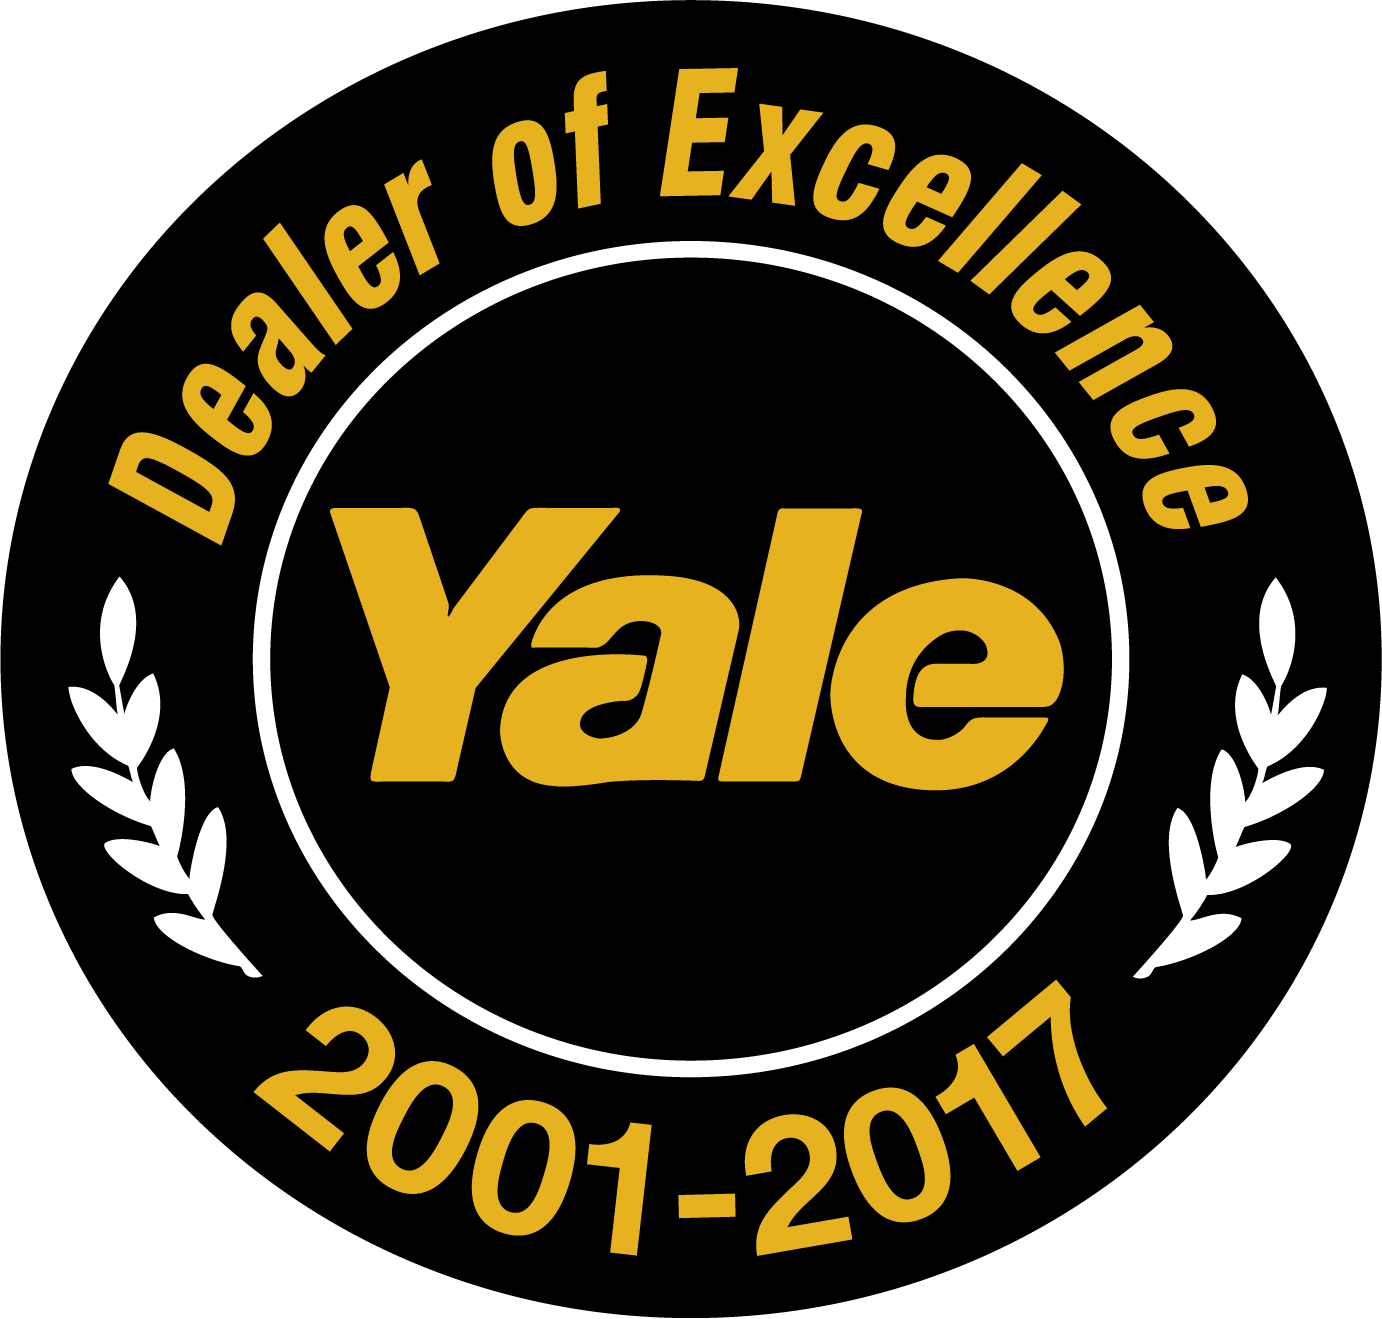 Eastern lift truck the mid atlantics forklift specialists eastern lift truck co named yale dealer of excellence for 17th consecutive year 1betcityfo Choice Image